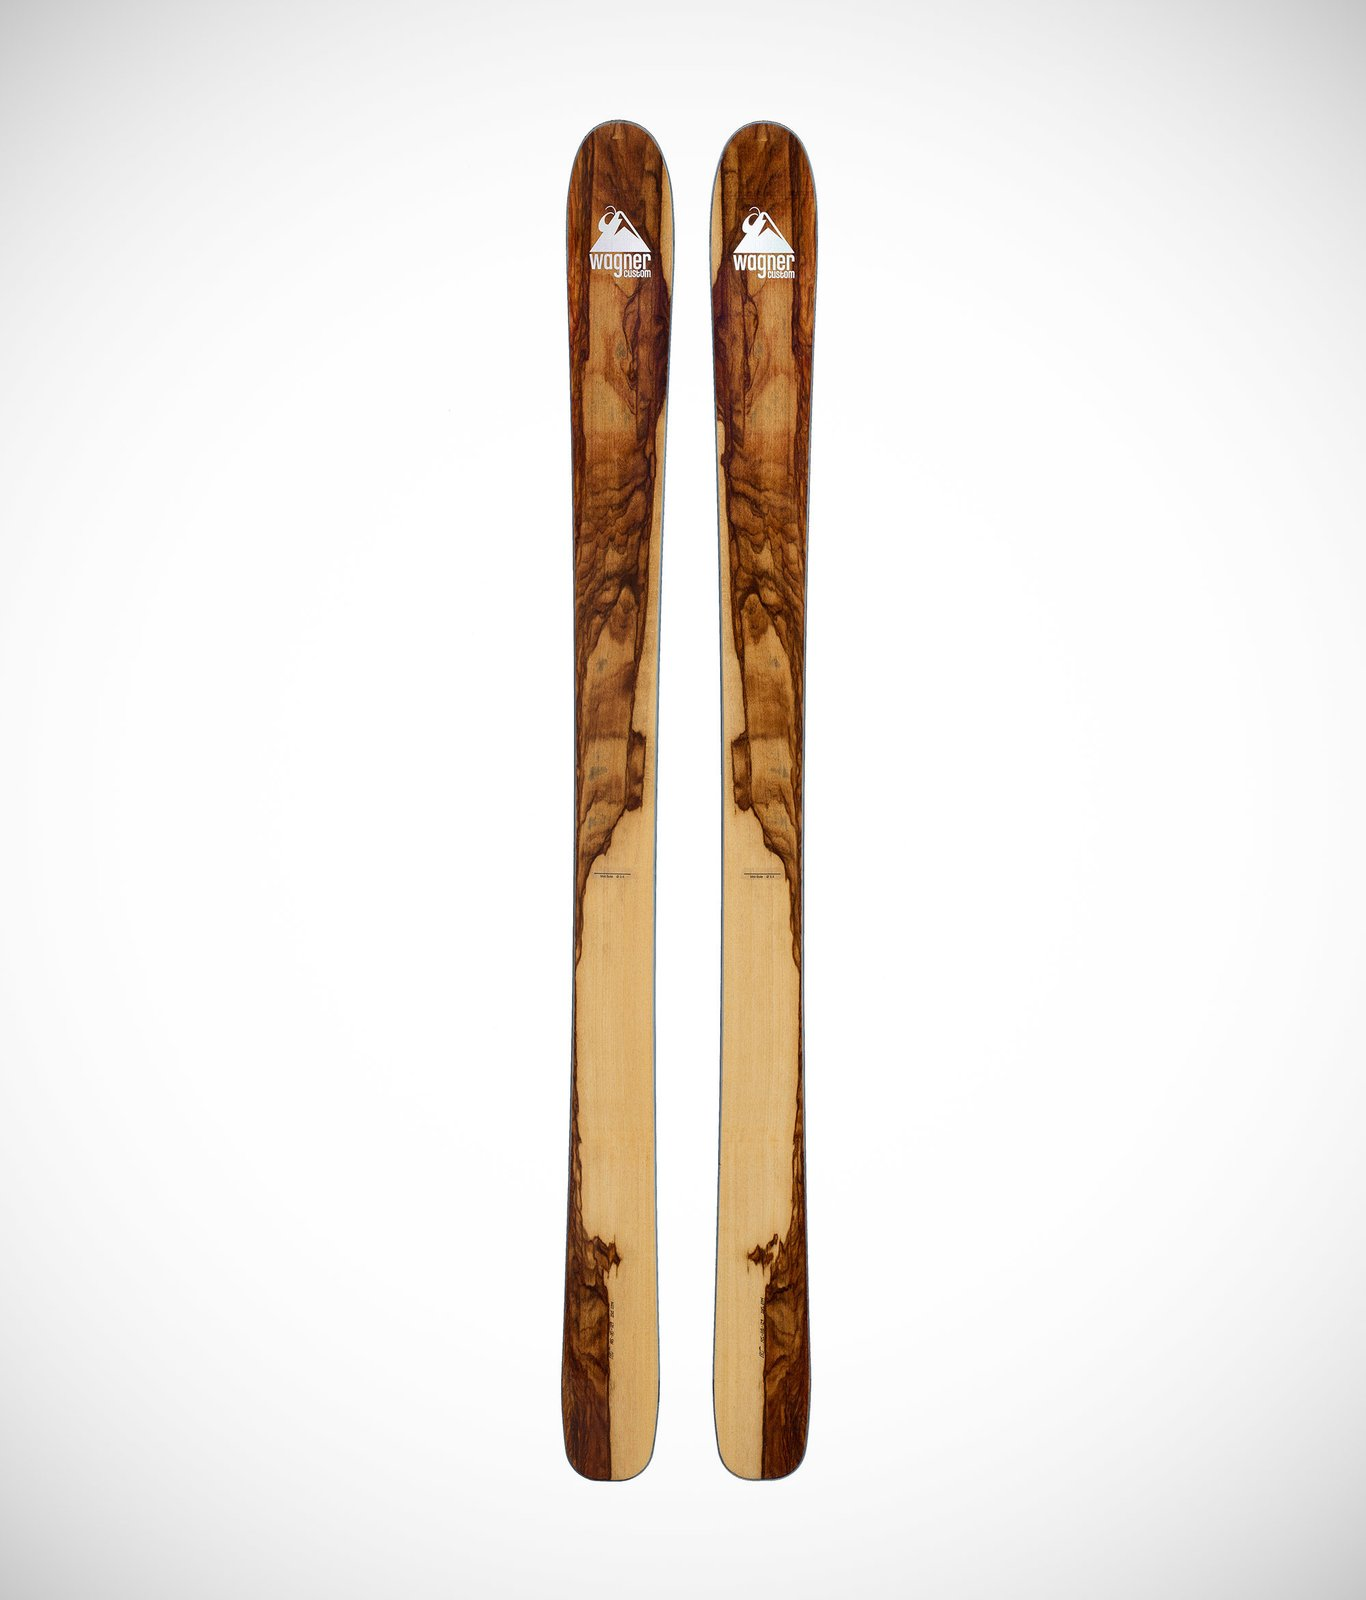 Photo 6 of 6 in Wagner Custom - The Science And Art Of Building The Perfect Bespoke Skis